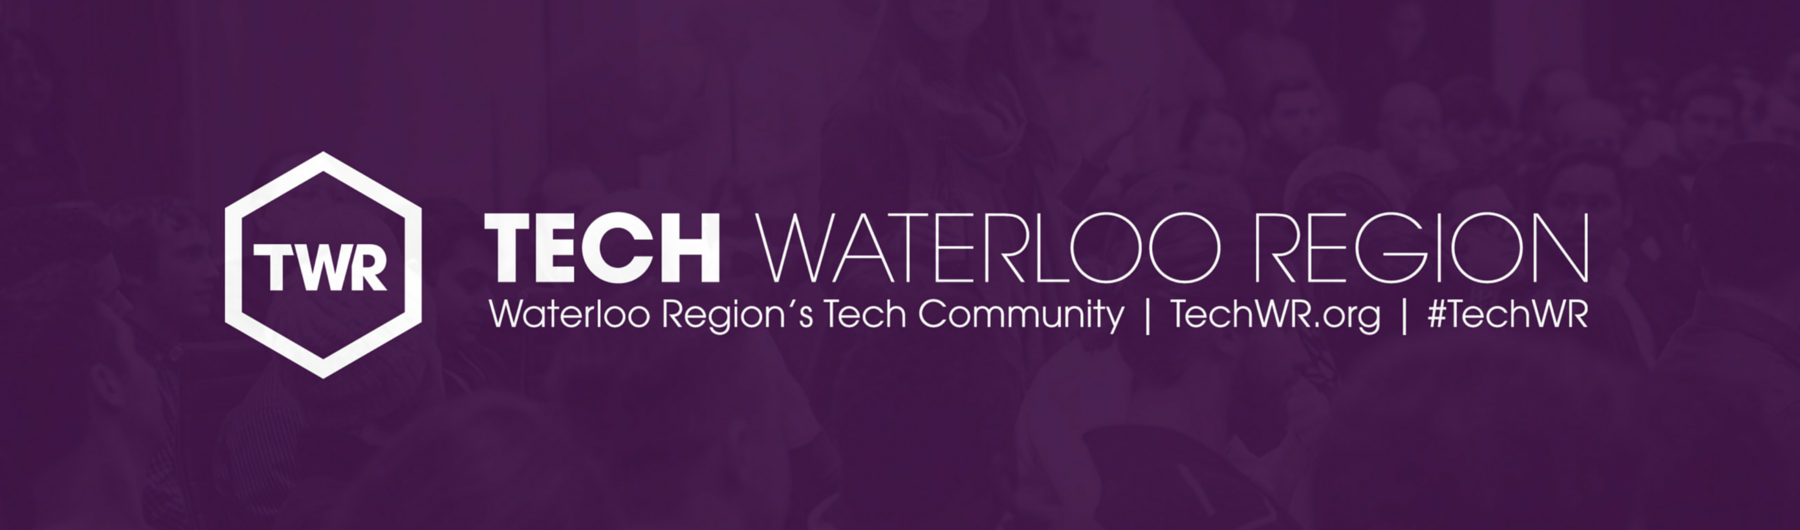 TechWaterloo - December 5, 2018